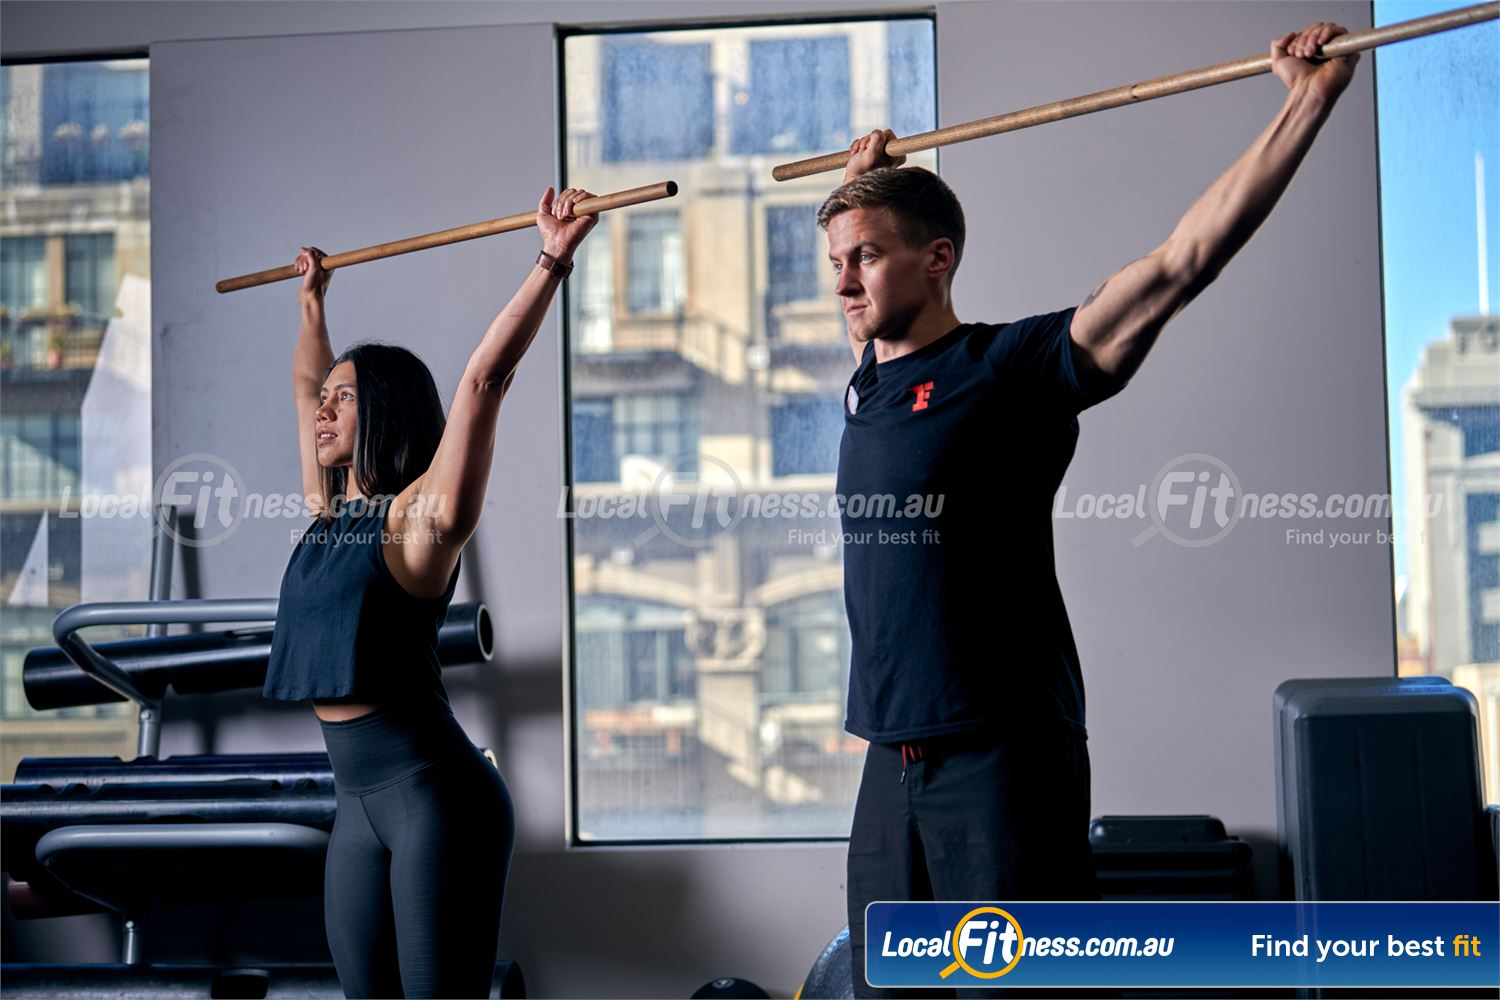 Fitness First Melbourne Central Platinum Melbourne Our Melbourne gym team can recommend a stretching routine.